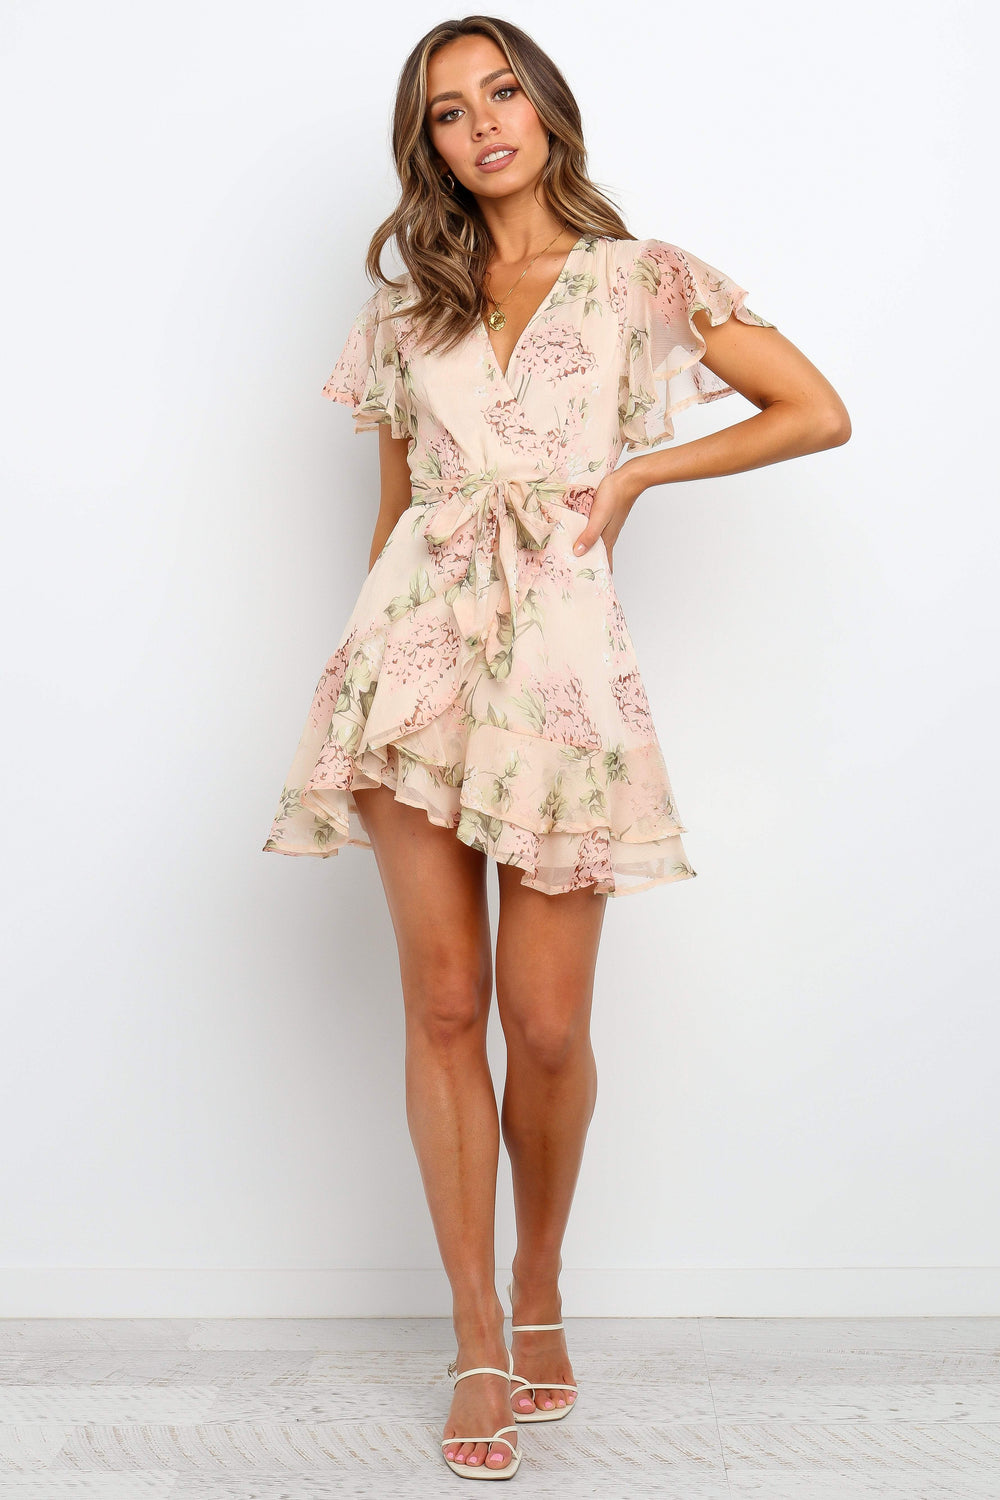 Petal and Pup USA DRESSES Zella Dress - Nude 4